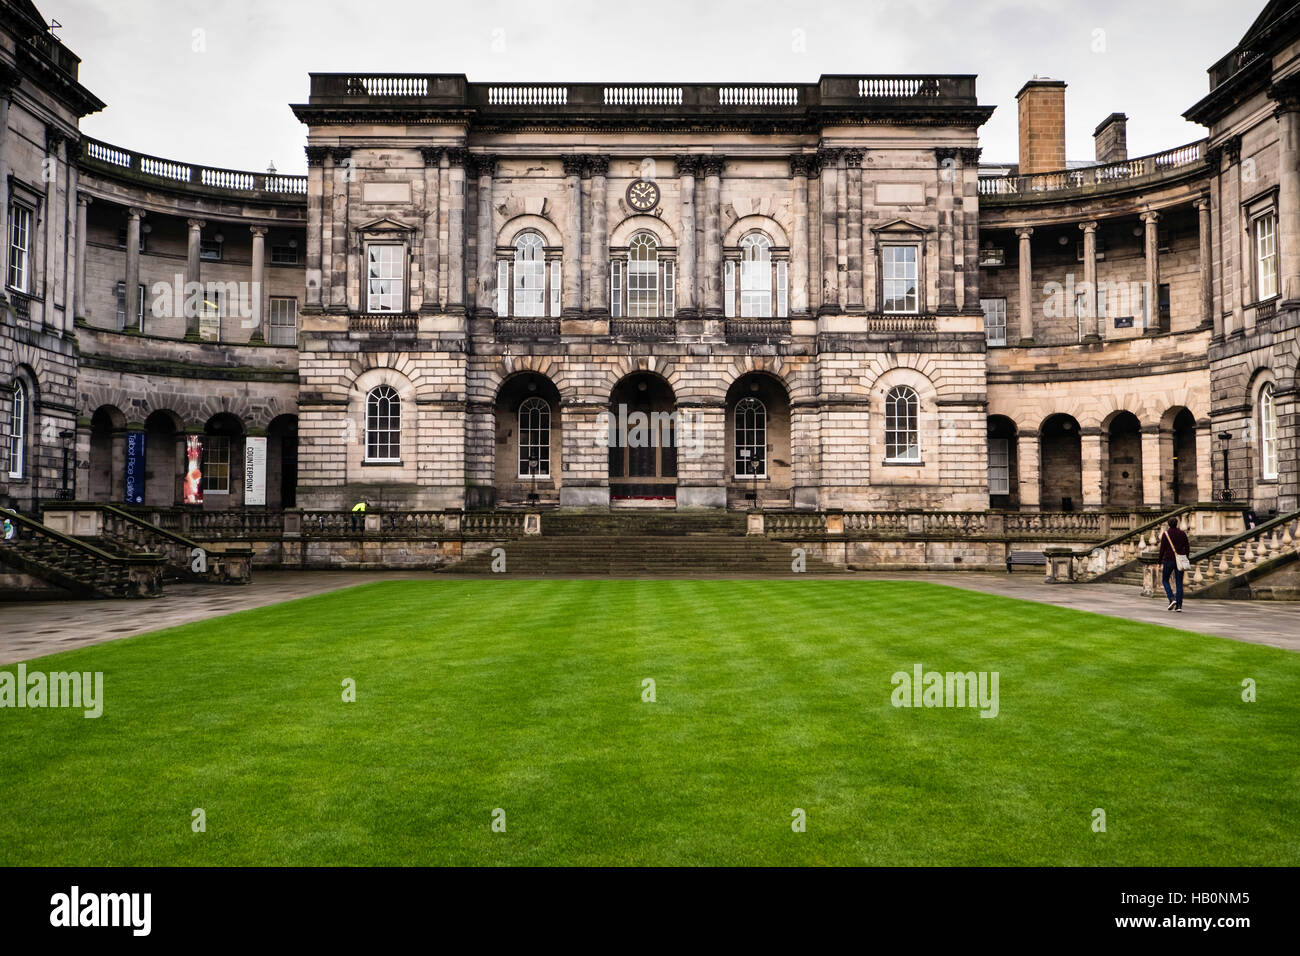 Edinburgh Old College and Talbot Rice Gallery, Edinburgh, Scotland, designed by William Henry Playfair - Stock Image